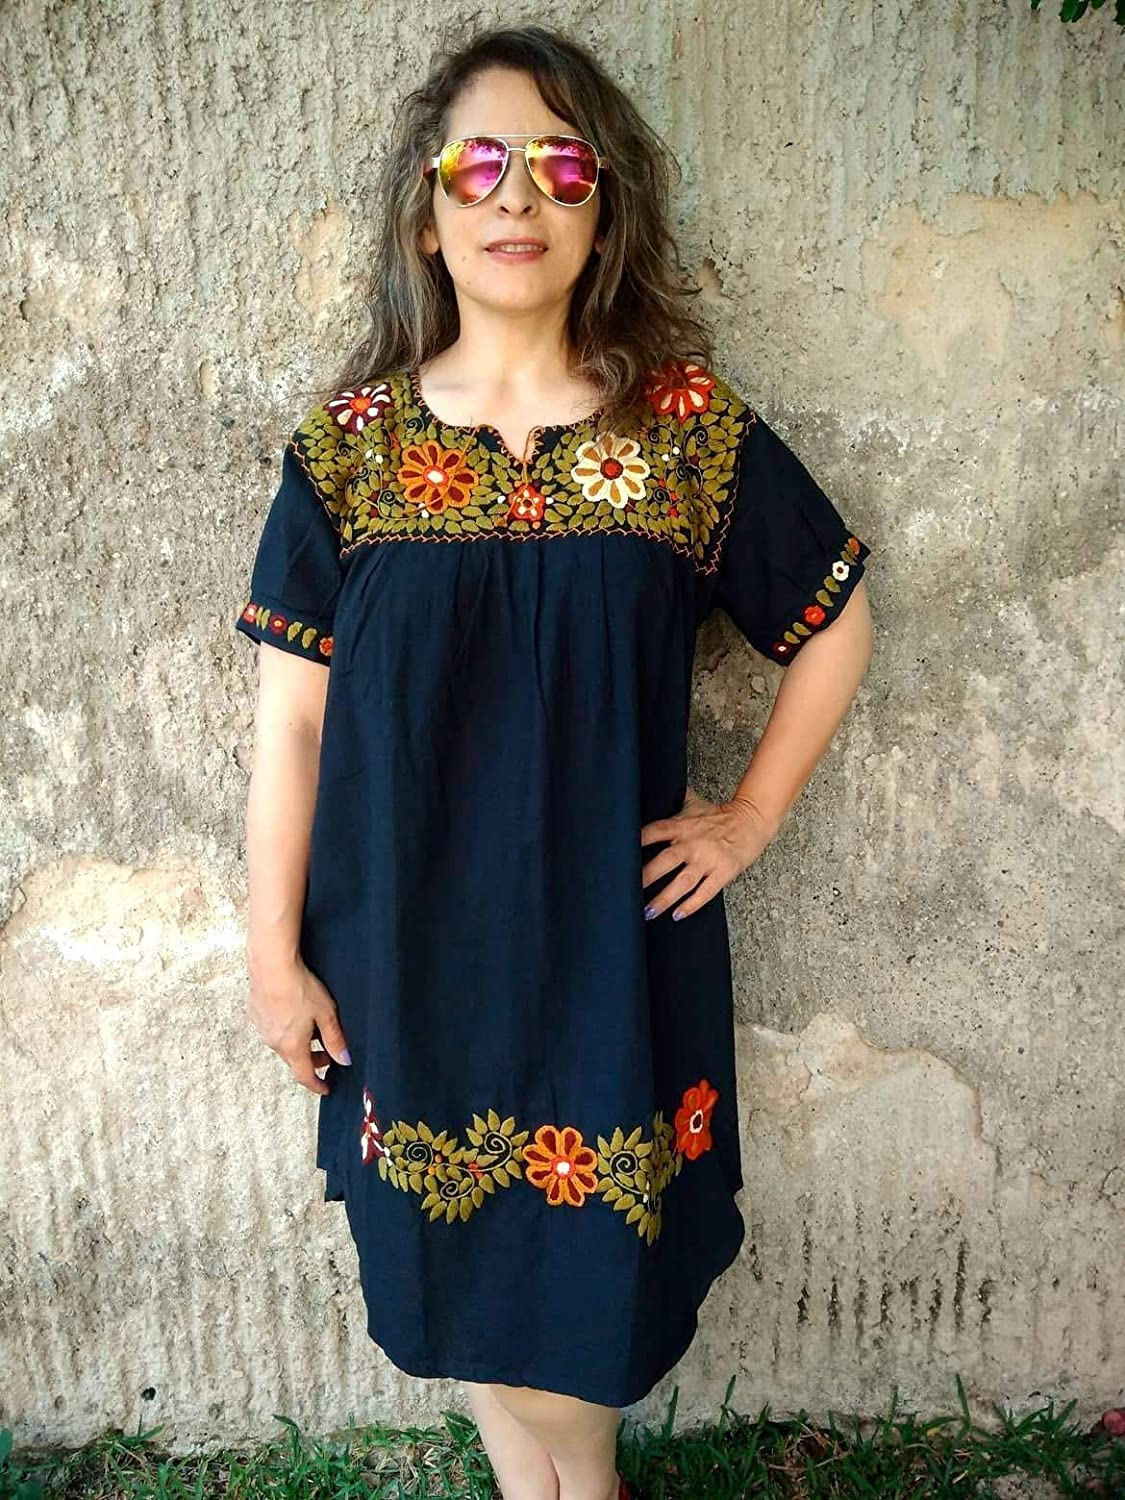 Black Mexican Embroidered Dress for Women, Hippie Floral Dress Plus Size